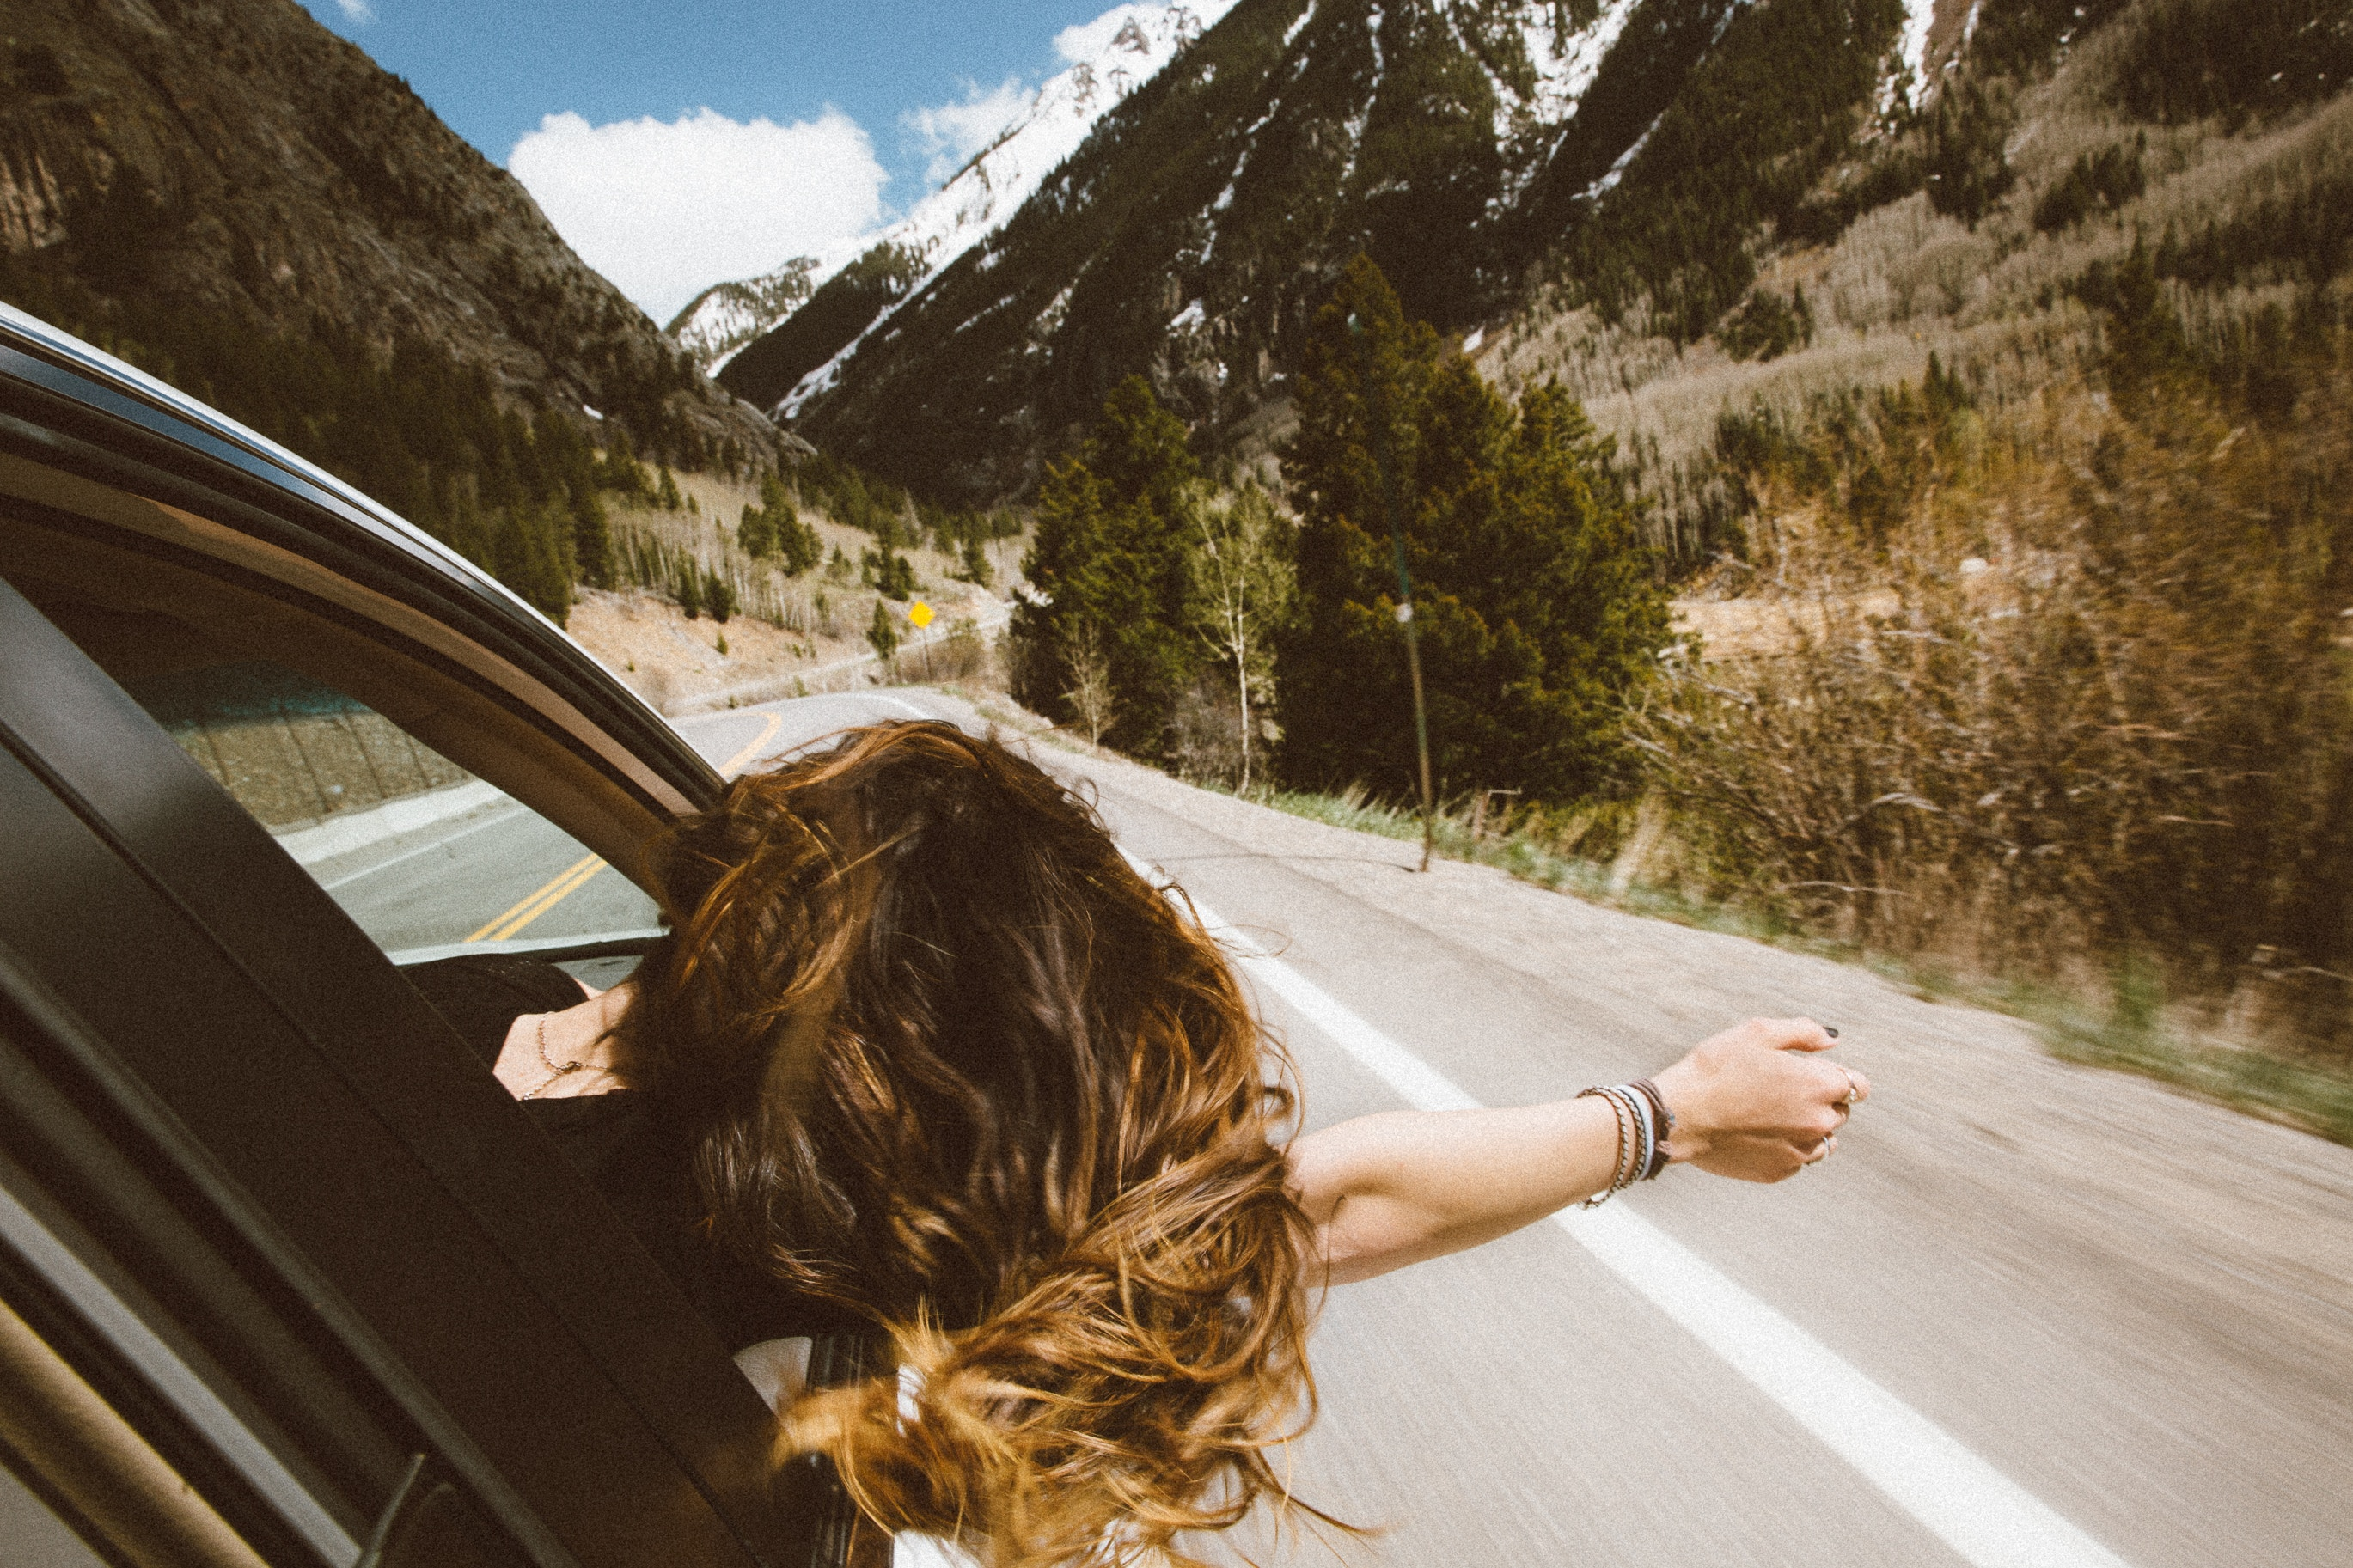 5-things-you-should-do-before-your-summer-road-trip